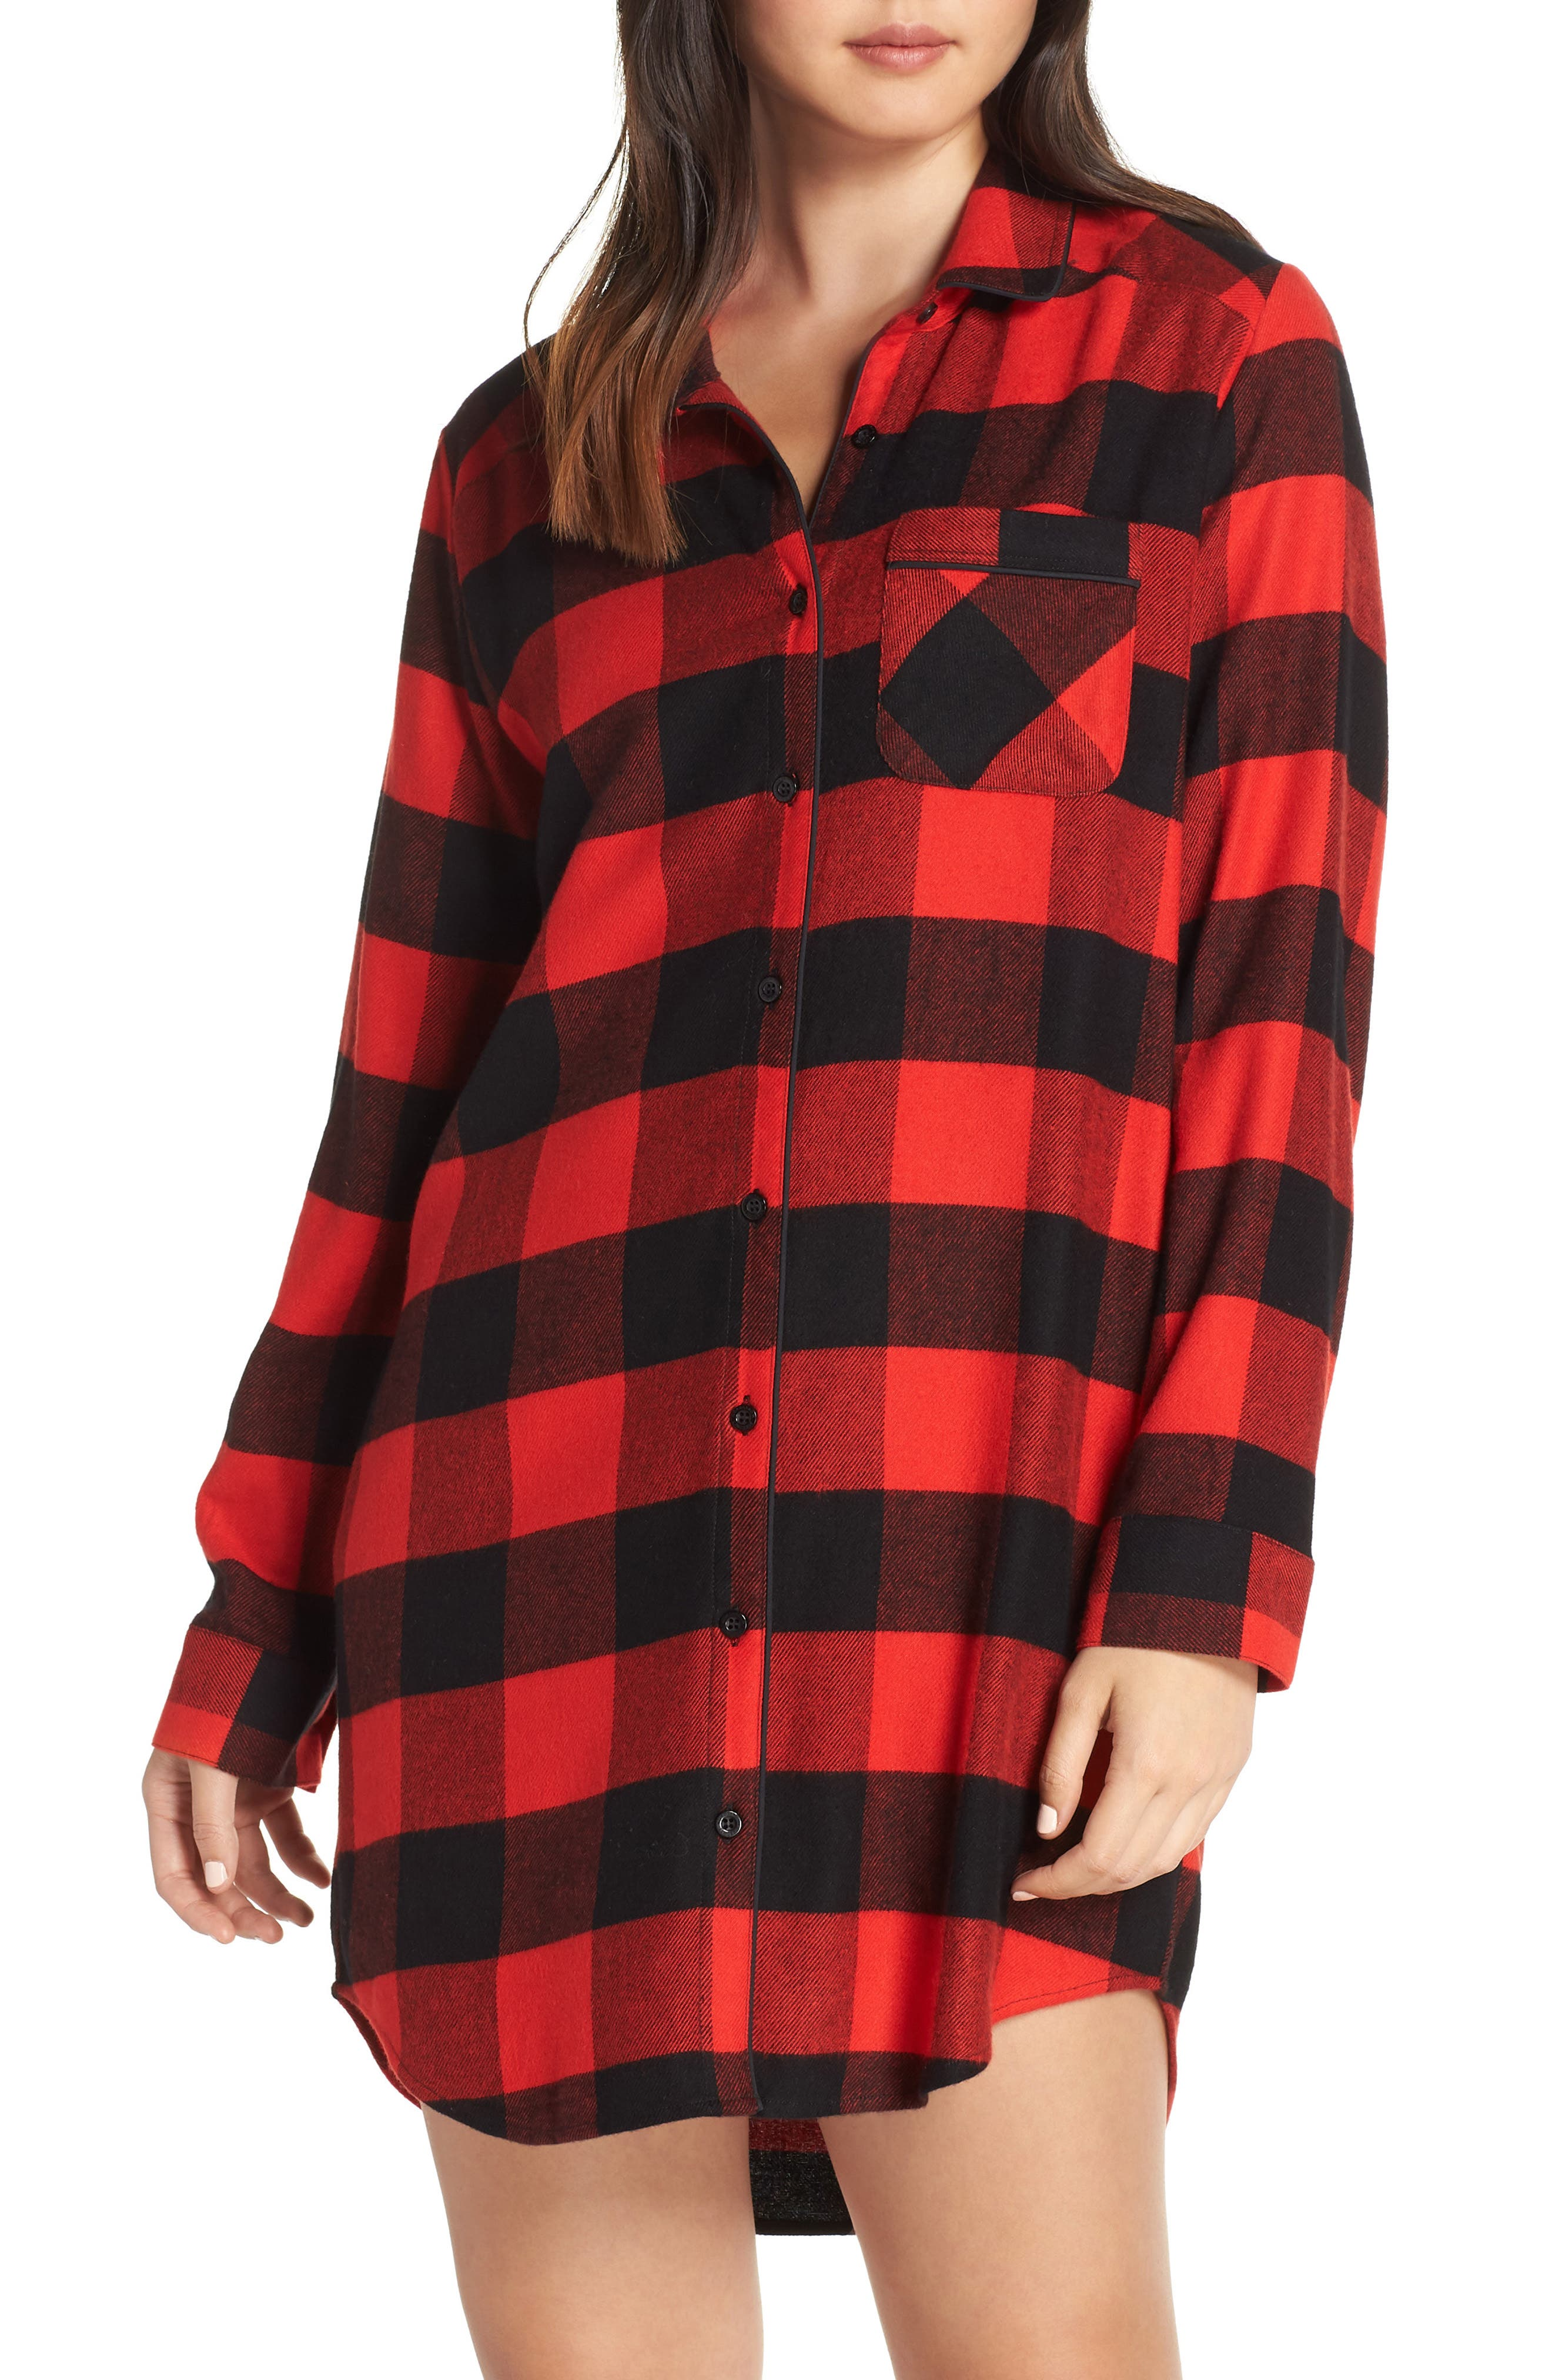 Flannel Nightshirt,                         Main,                         color, RED BLOOM LARGE BUFFALO CHECK